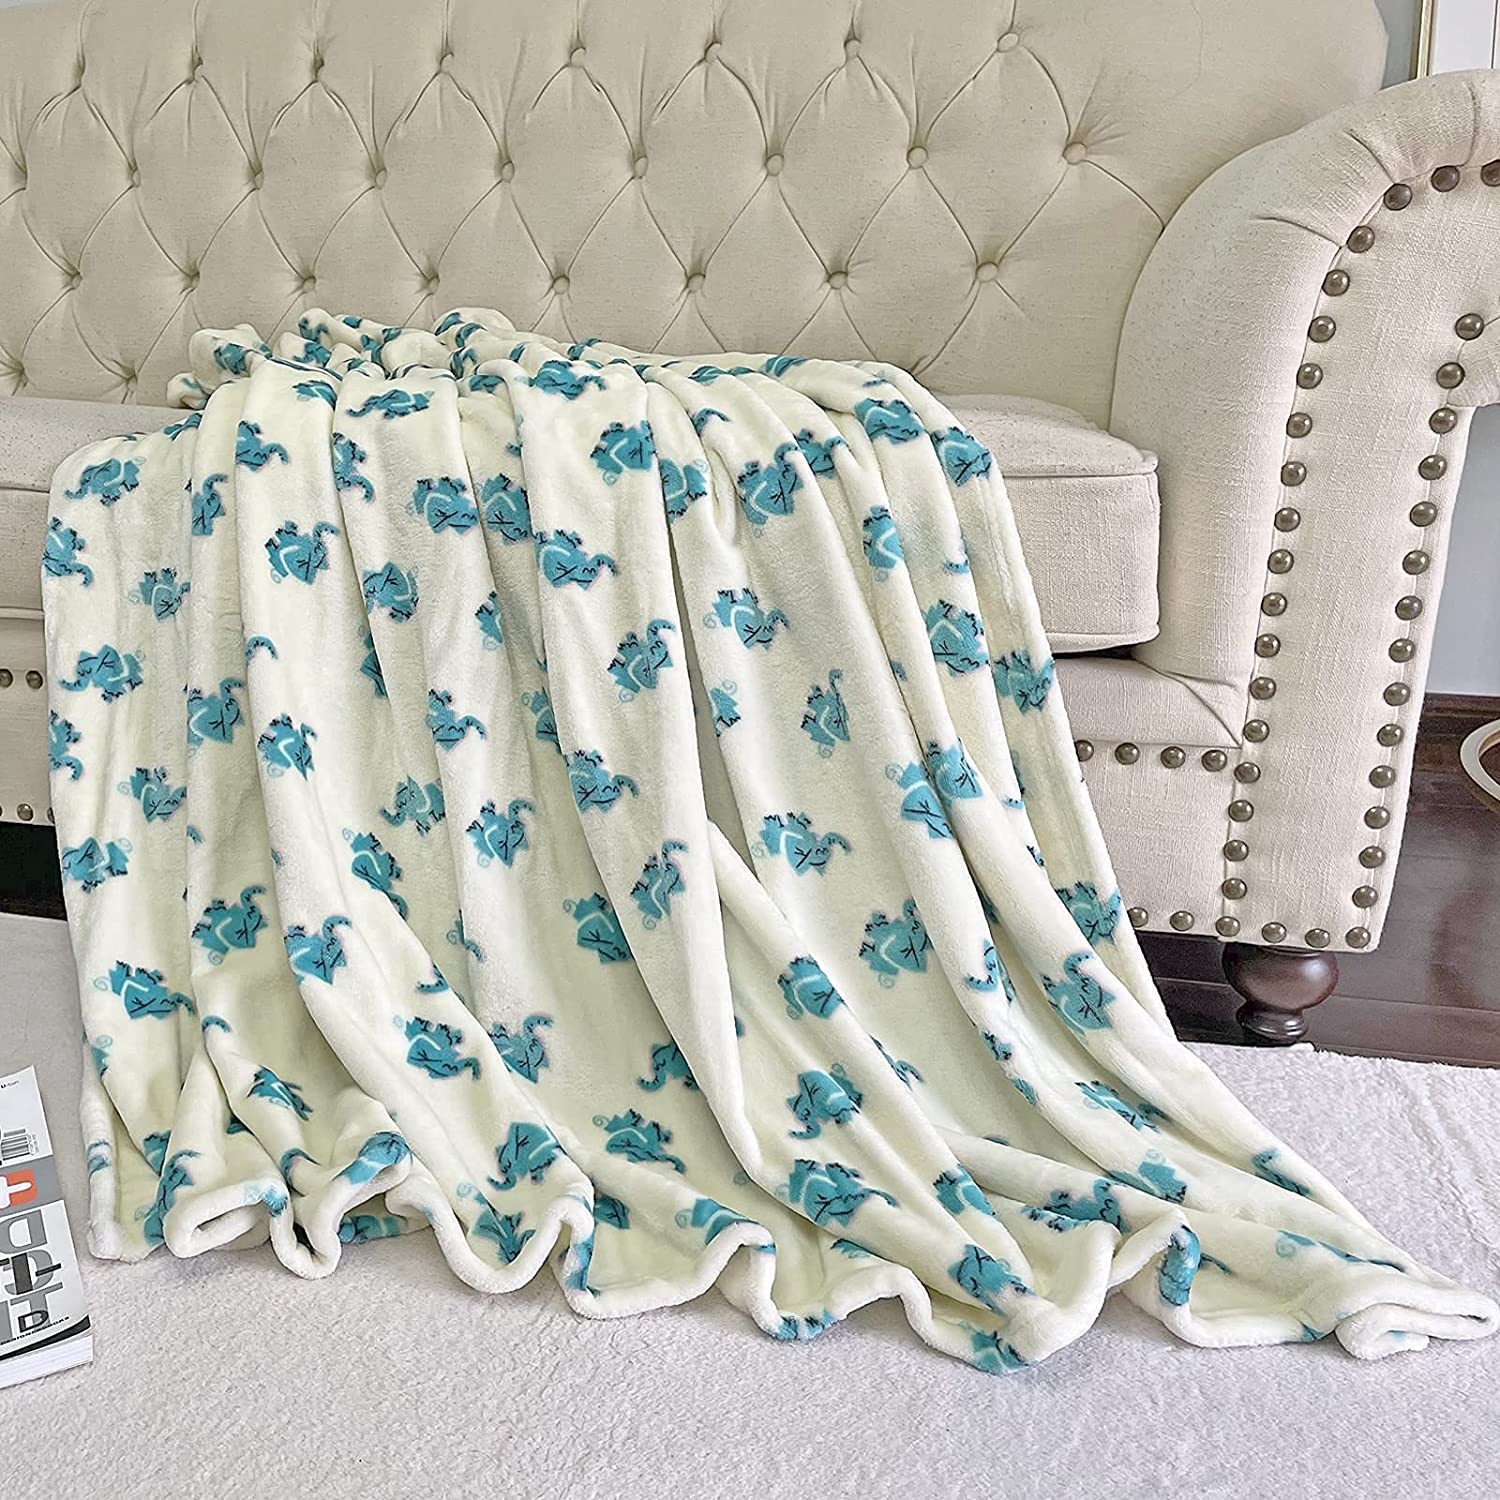 Outlet ☆ Free Shipping BT.WA Kids Blanket Flannel Throw T Sale Special Price for Soft Baby